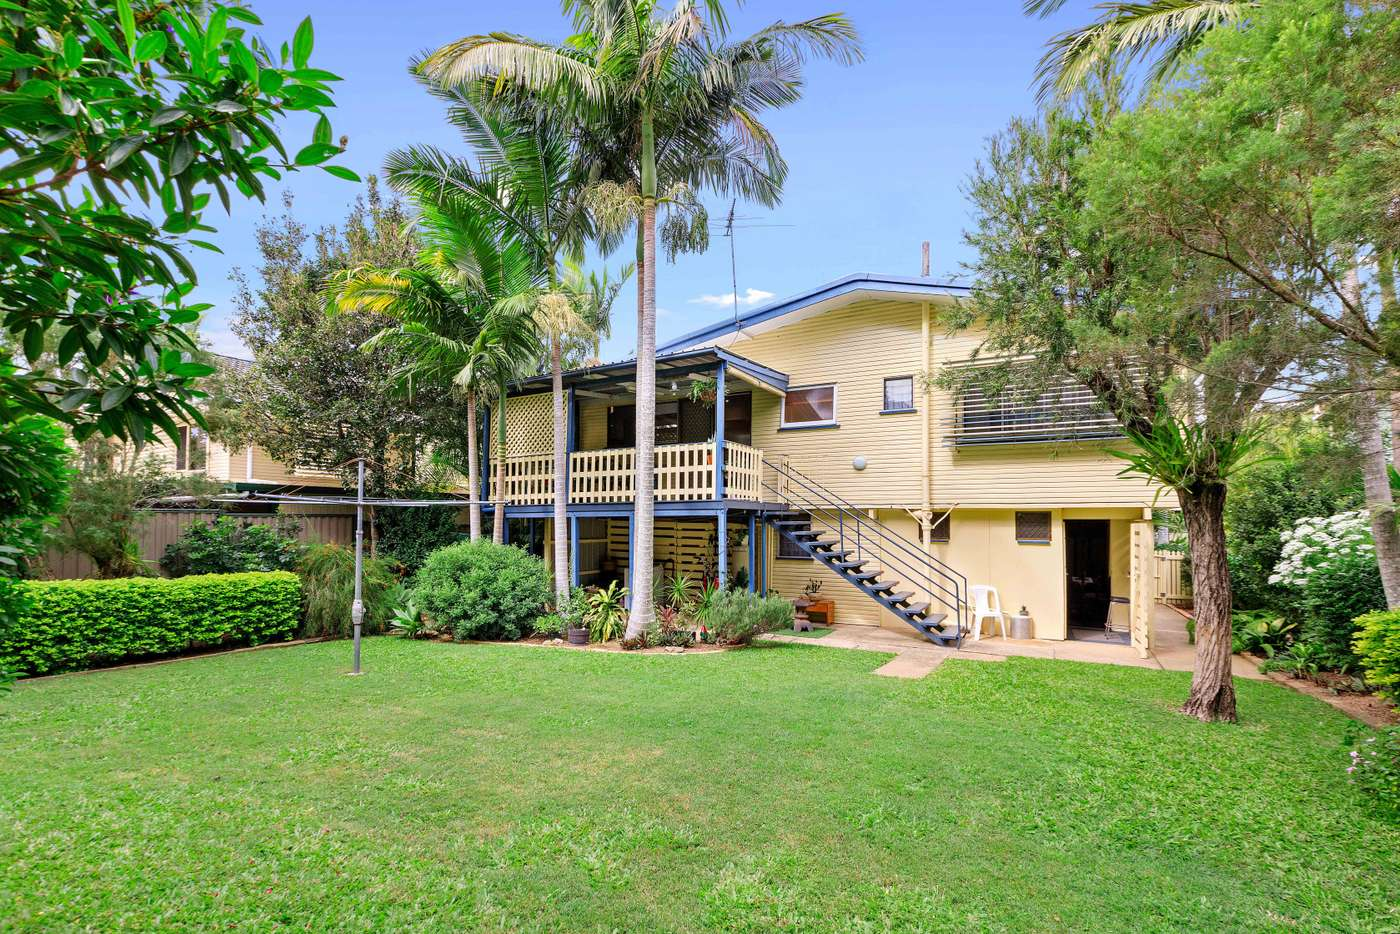 Main view of Homely house listing, 92 Dykes Street, Mount Gravatt East QLD 4122